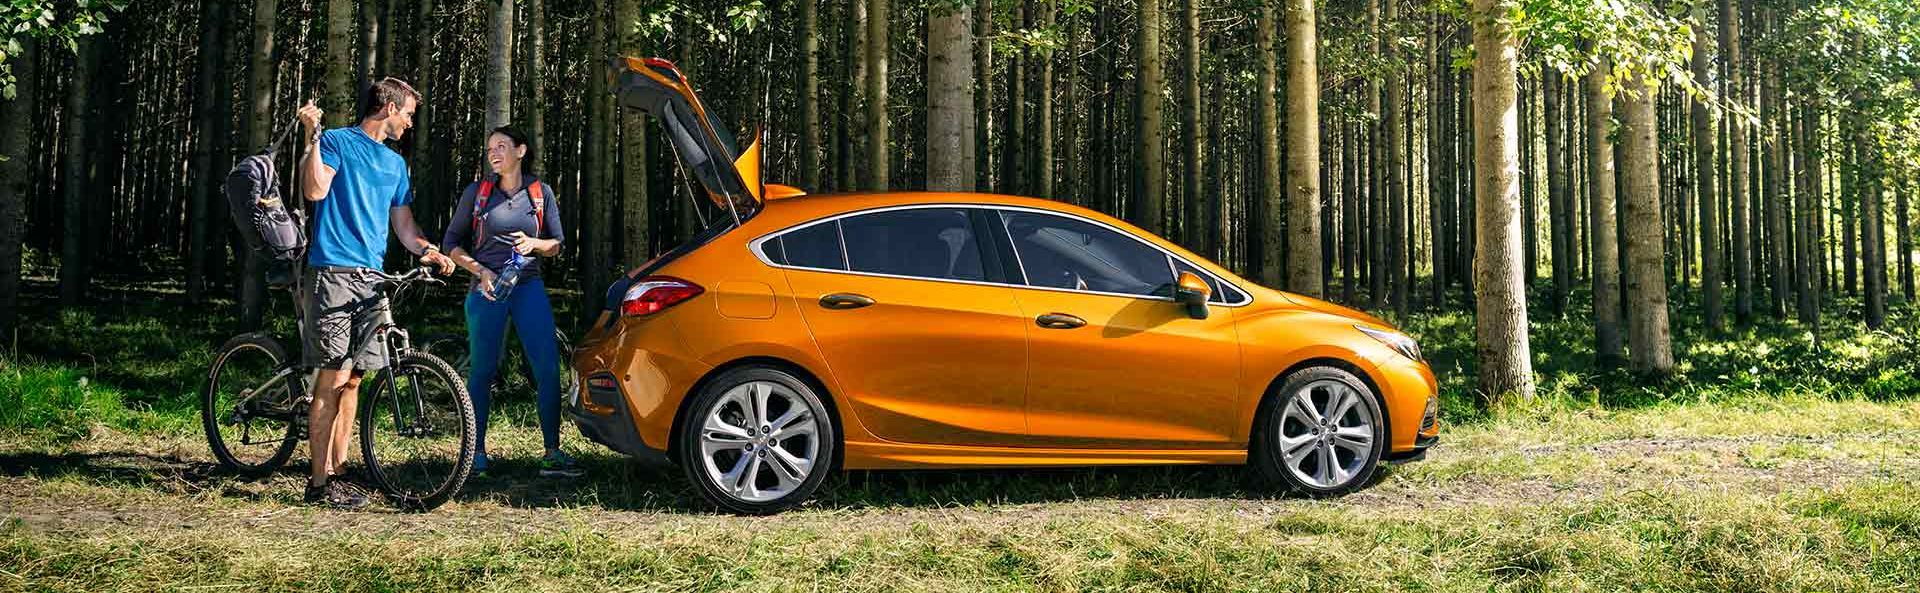 2017 Chevy Cruze For Sale Near Boardman, OH